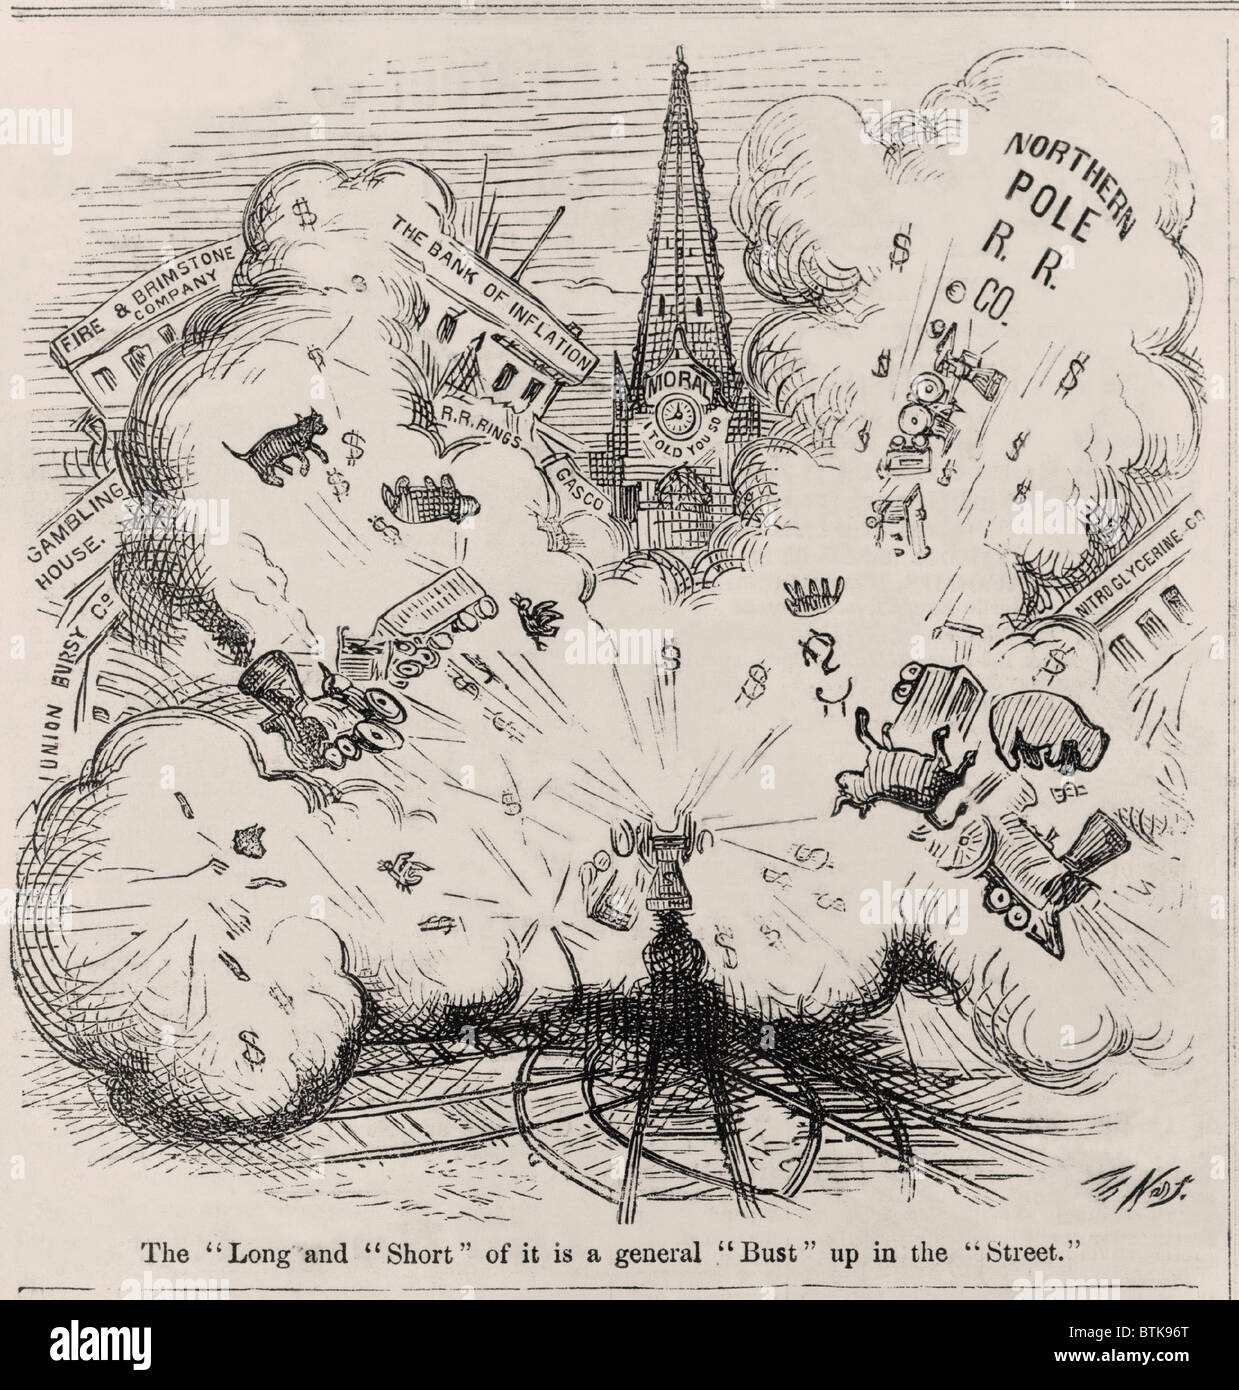 Financial Panic of 1873. Thomas Nast cartoon showing an explosion blowing up Northern Pole R.R. Co., the Bank of - Stock Image